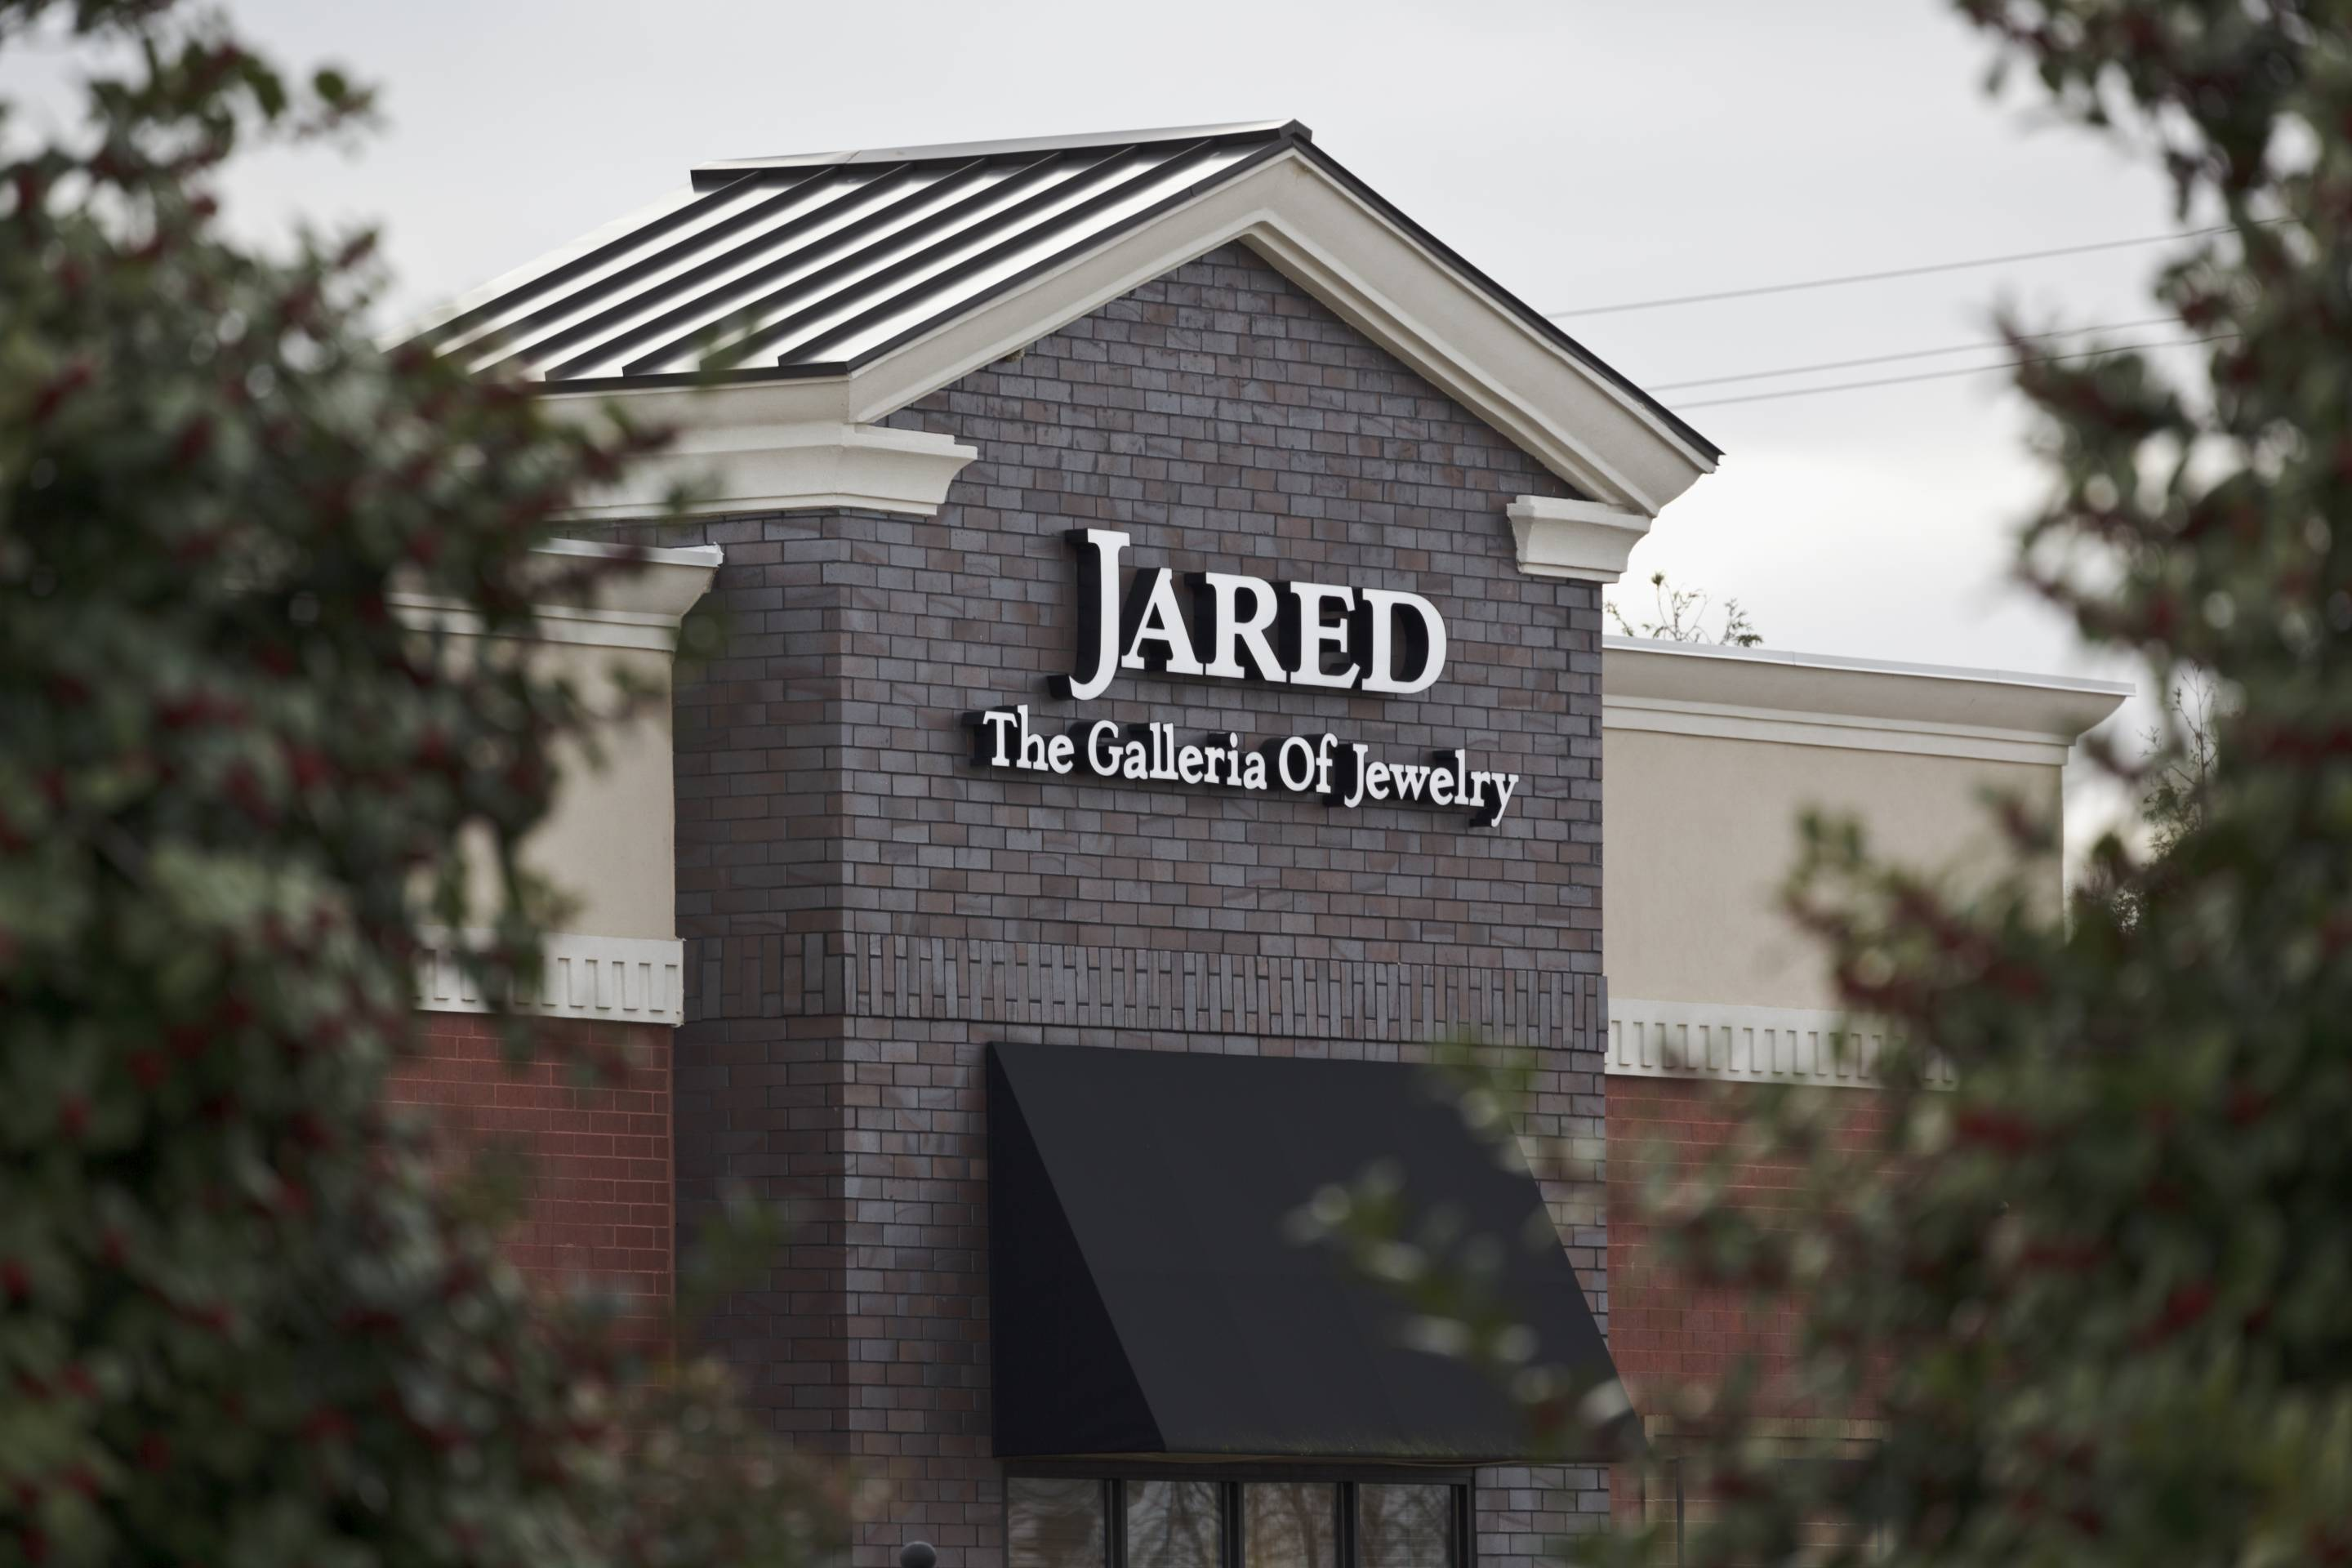 Jared jewelry store in Tennessee